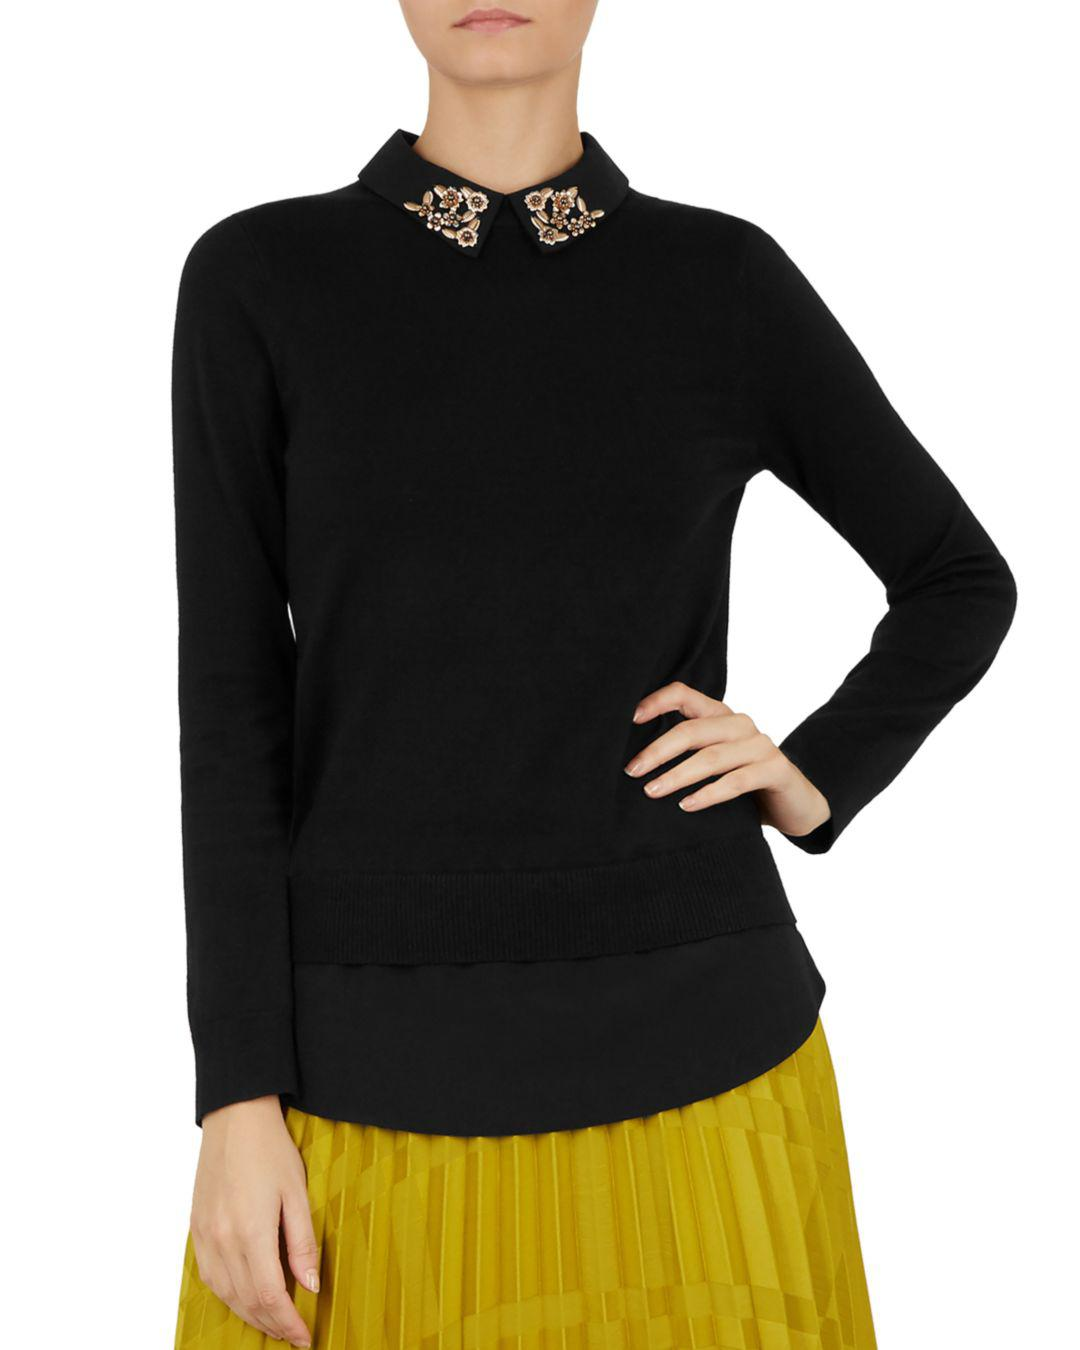 670bda69f31 Lyst - Ted Baker Moliiee Embellished-collar Sweater in Black